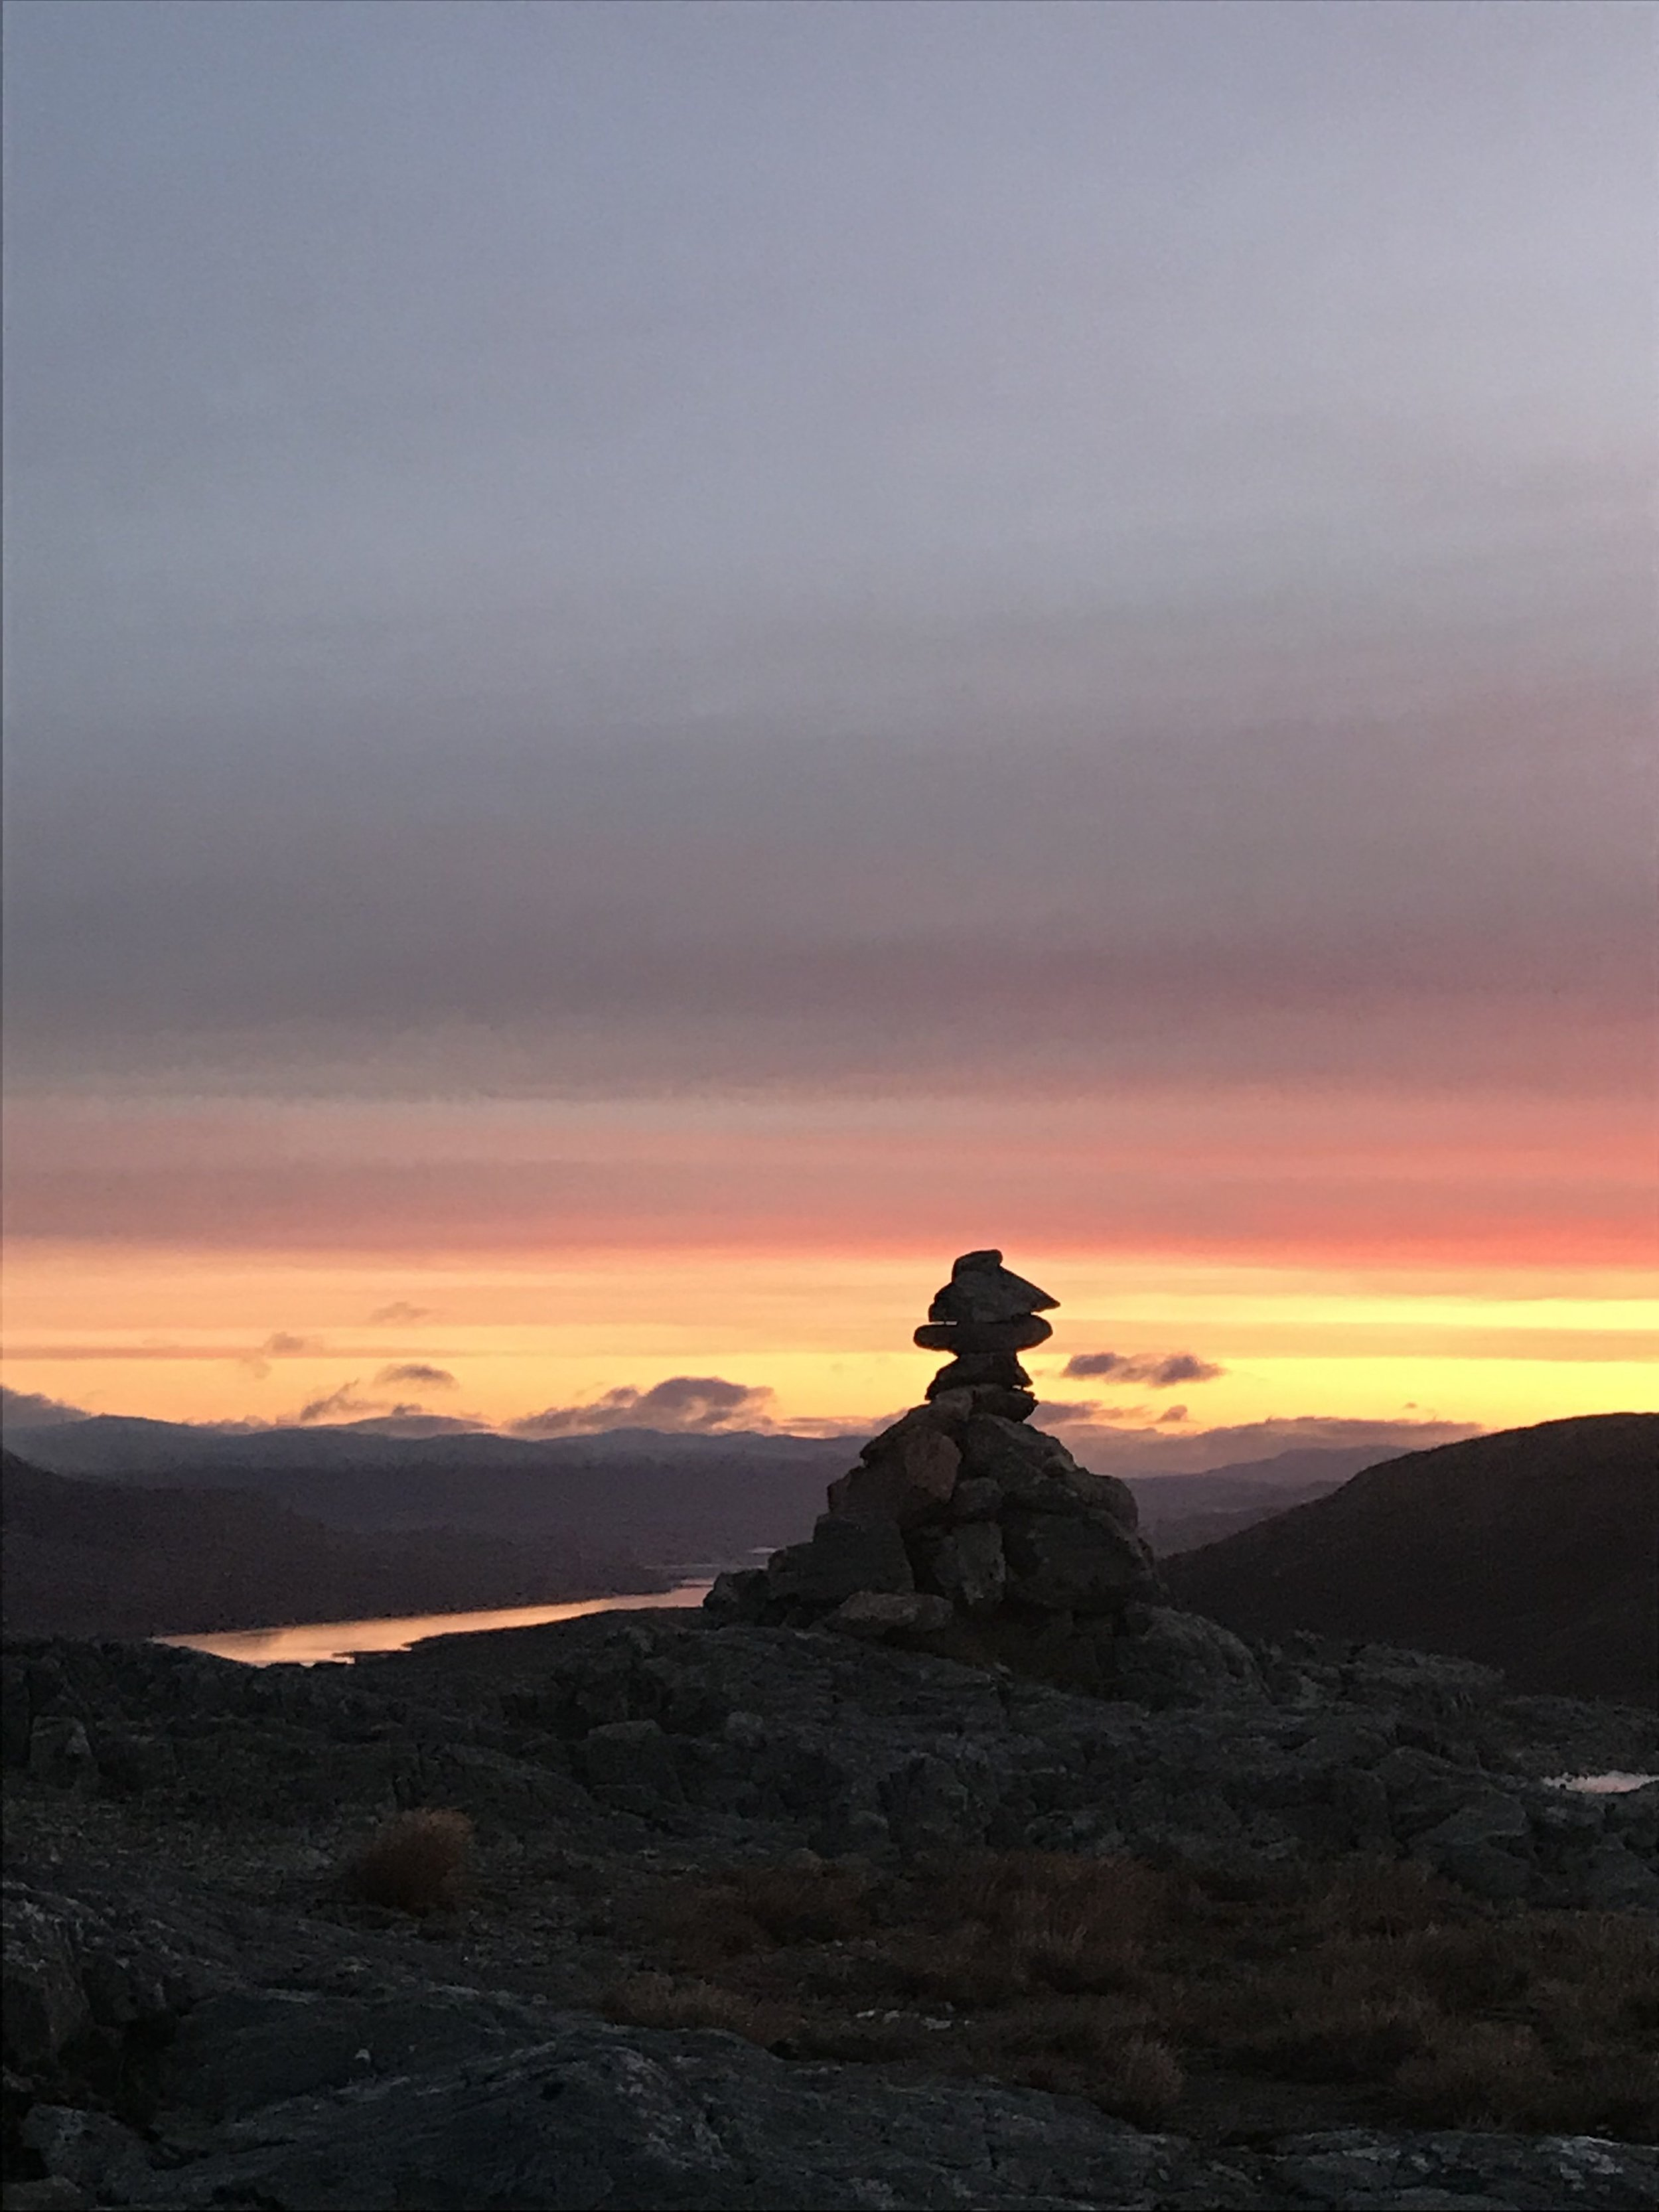 Possibly my favourite place on the planet to go for sunrise - top of The Devil's Staircase on the West Highland Way